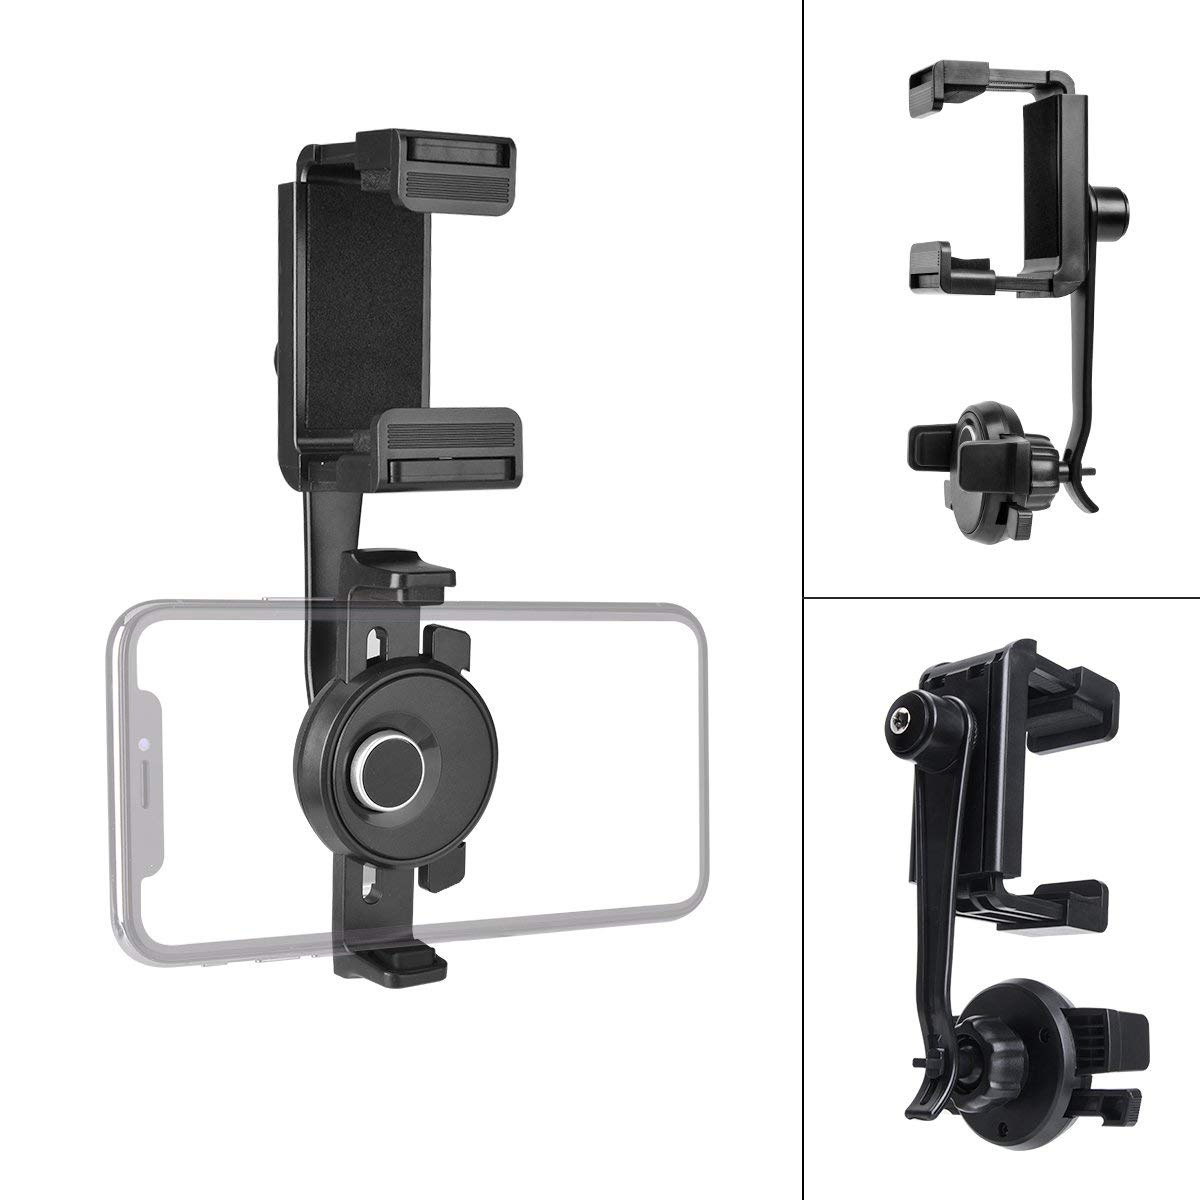 iSaddle CH205 Car Rearview Mirror Mount Holder Bicycle Handlebar Video Recorder Mount Holder for Car DVR Dash Cam G1W G1WH.